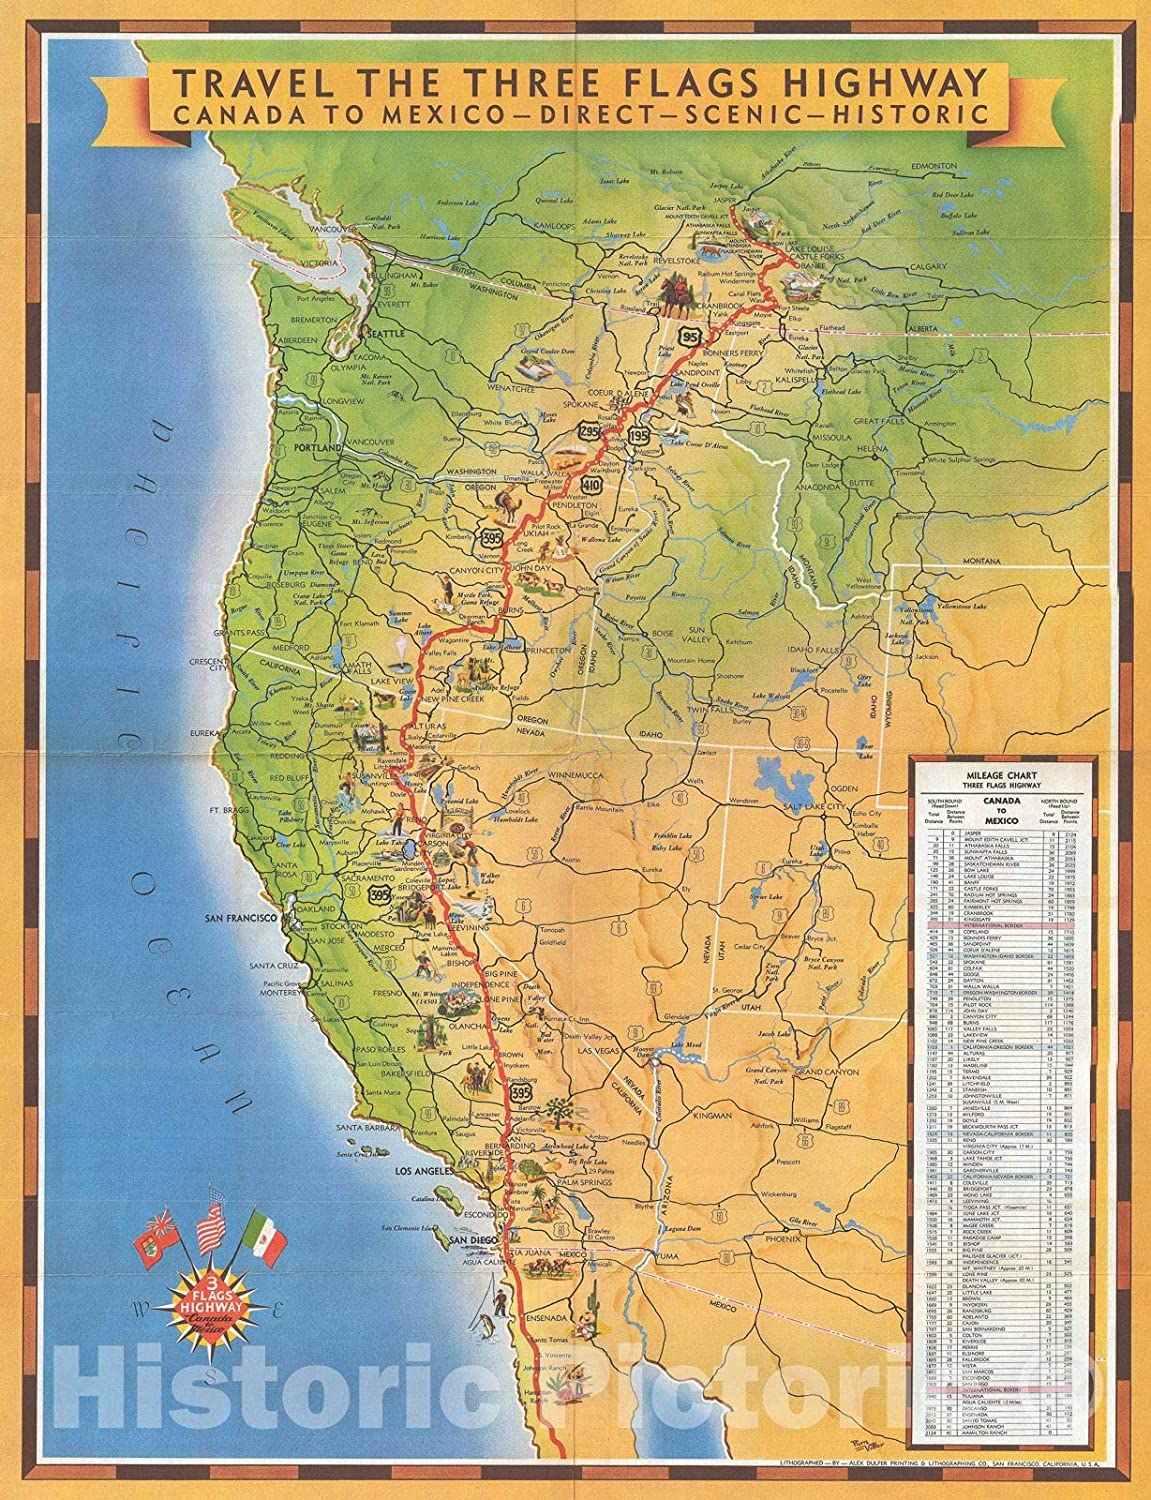 Map Us Highway 395 Amazon.com: Historic Map : Vittier Pictorial Map of U.S. Highway